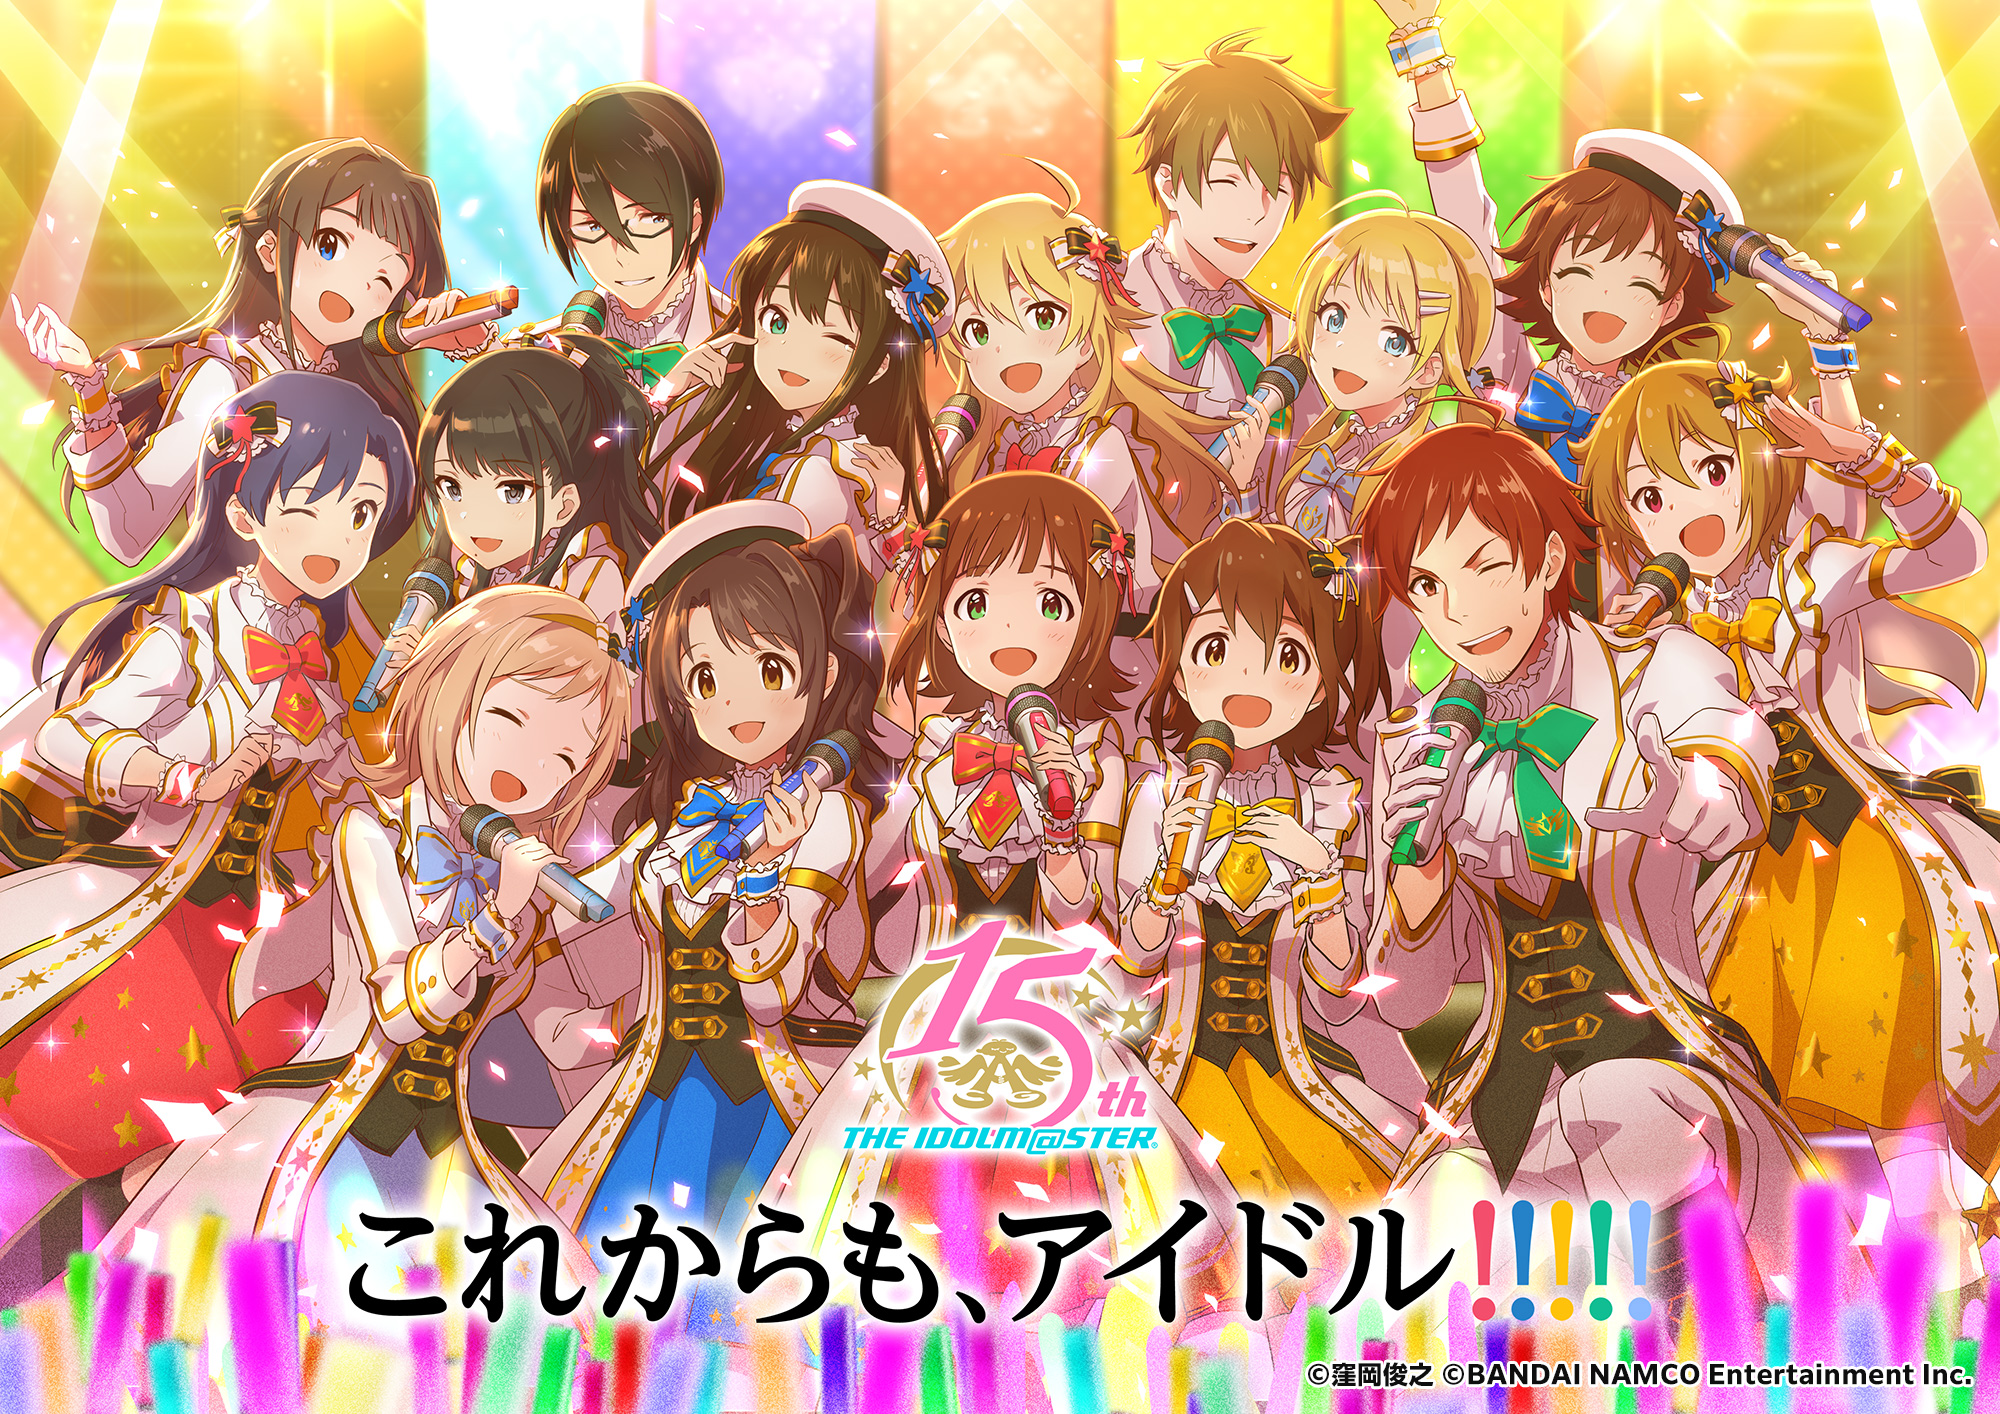 THE IDOLM@STER 15th Anniversary